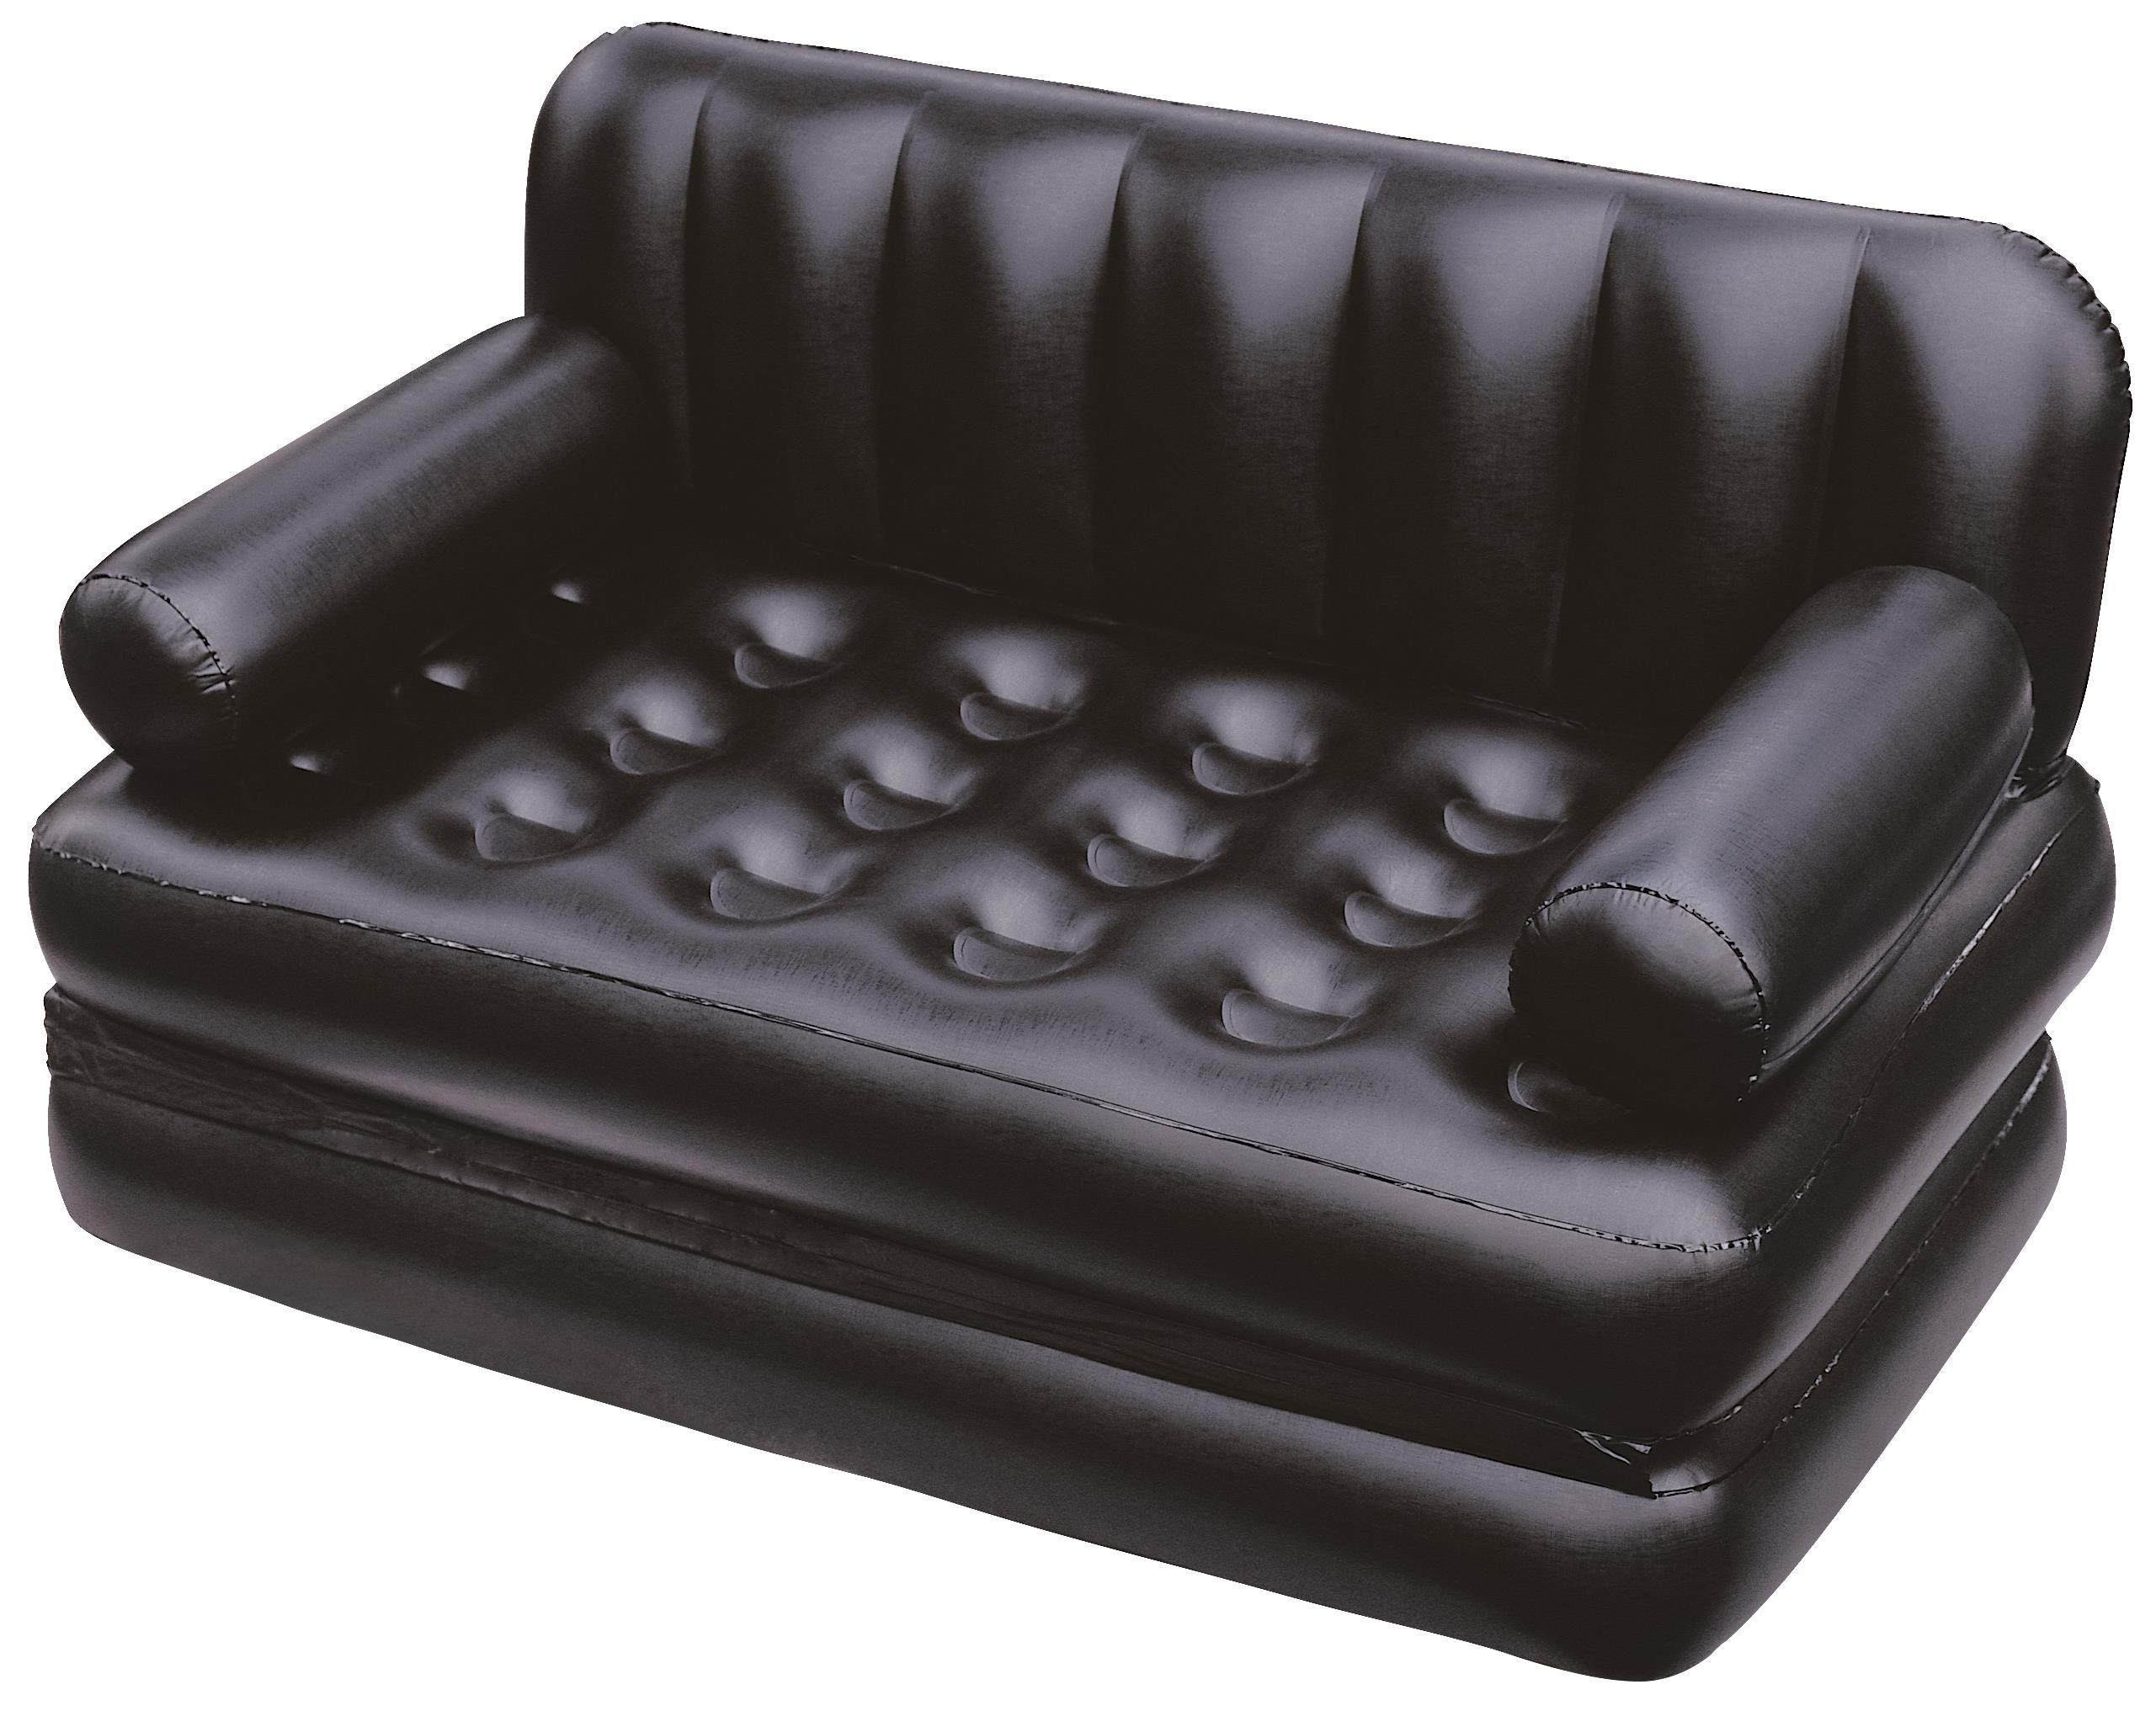 5-in-1 double sofa bed